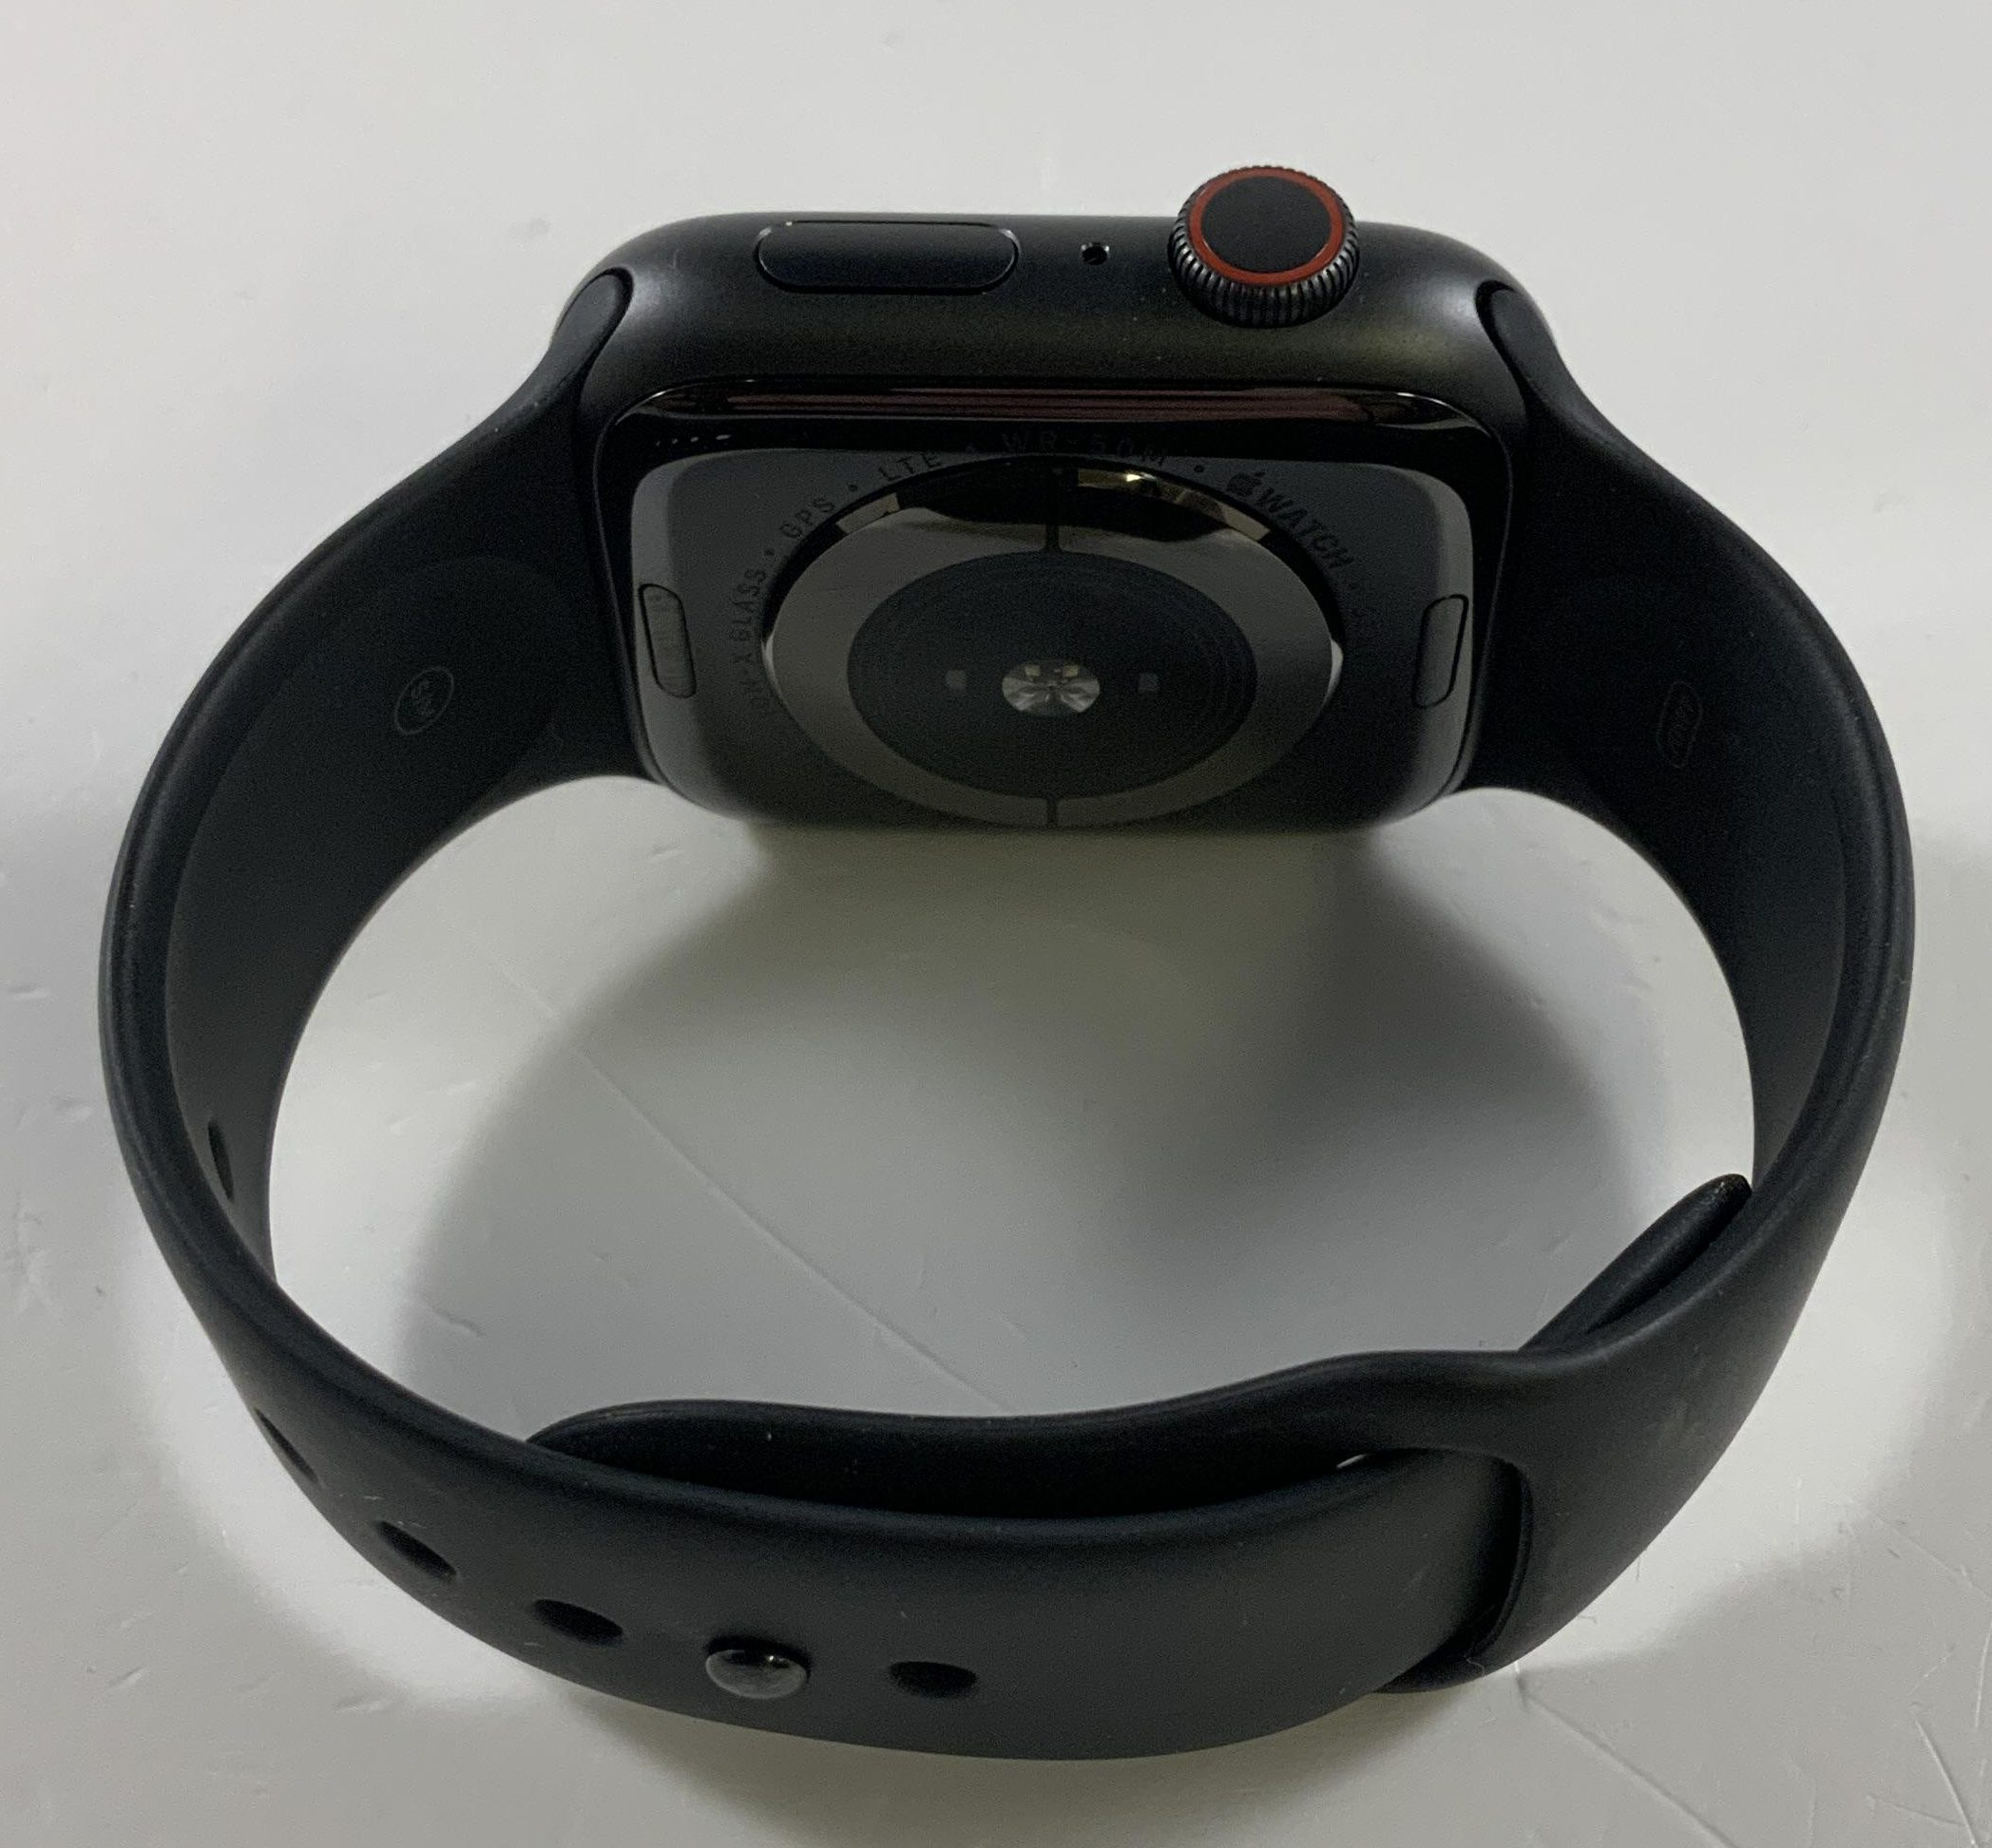 Watch Series 5 Aluminum Cellular (44mm), Space Gray, image 3